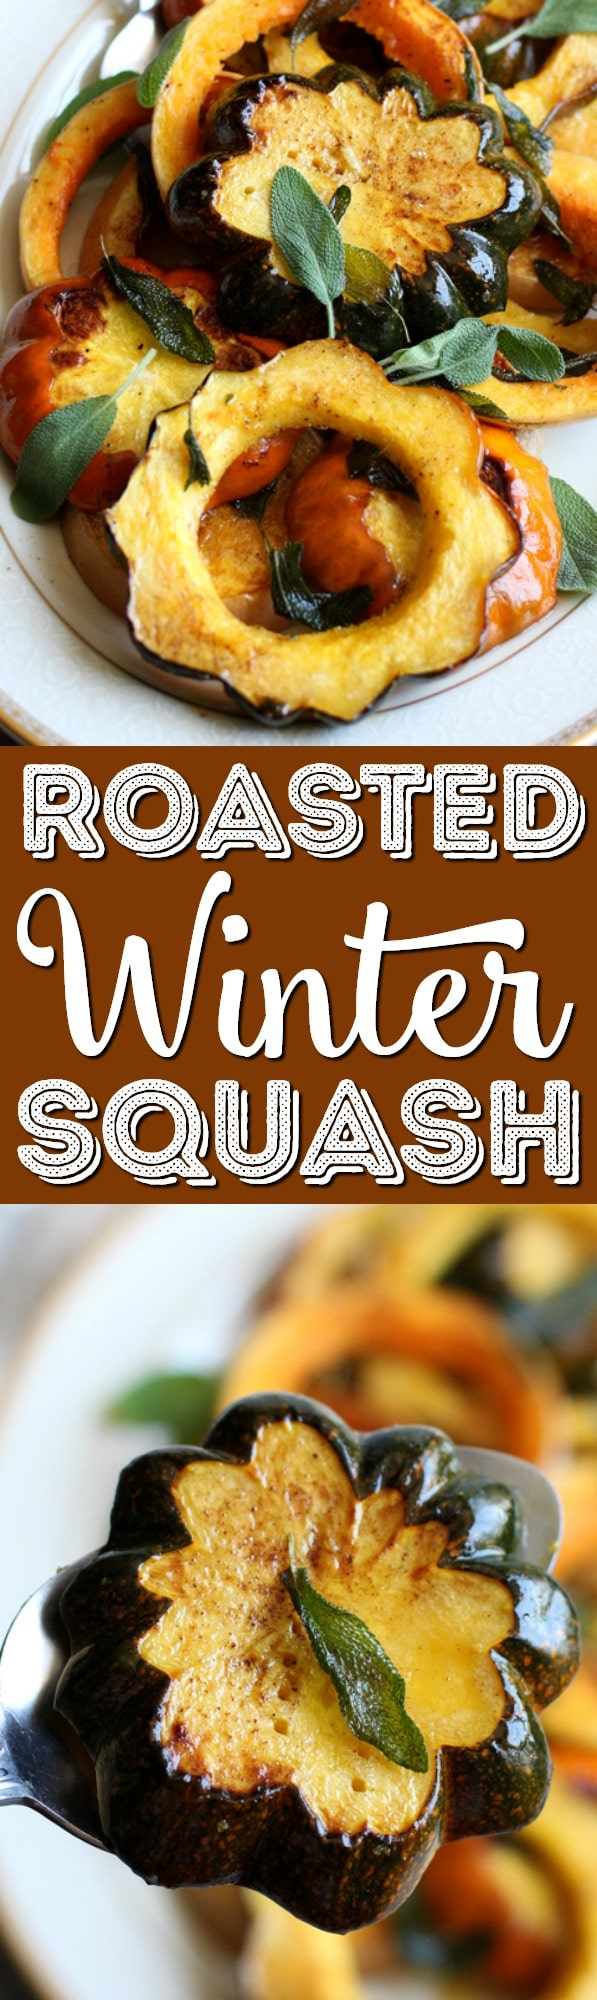 This simple recipe for Roasted Winter Squash with Brown Butter and Sage is a quick side dish that you can prepare in just 30 minutes. It's a great way to utilize in-season produce and celebrate Fall's flavor. via @sugarandsoulco